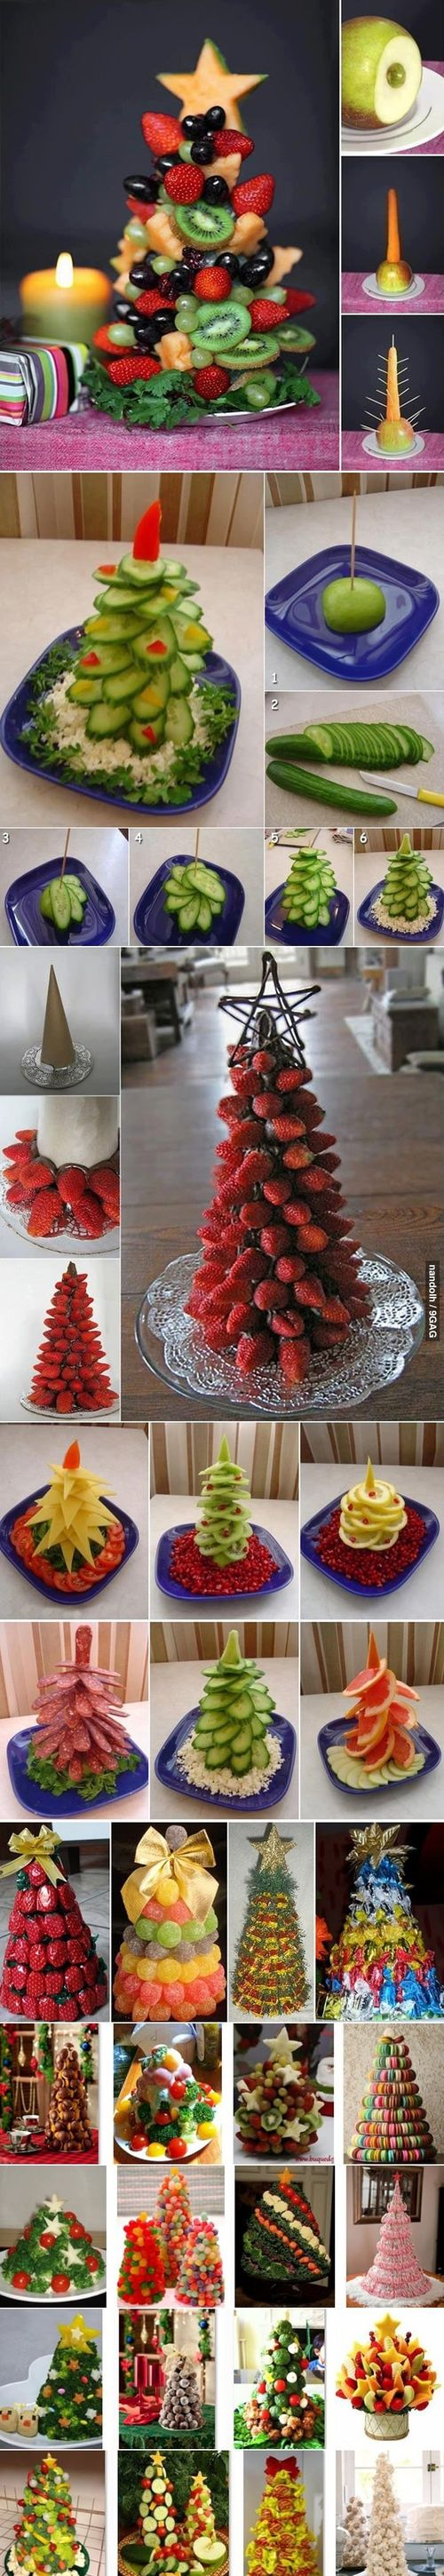 Get creative with your fruit salad and platters. Great idea for summer or the festive season.